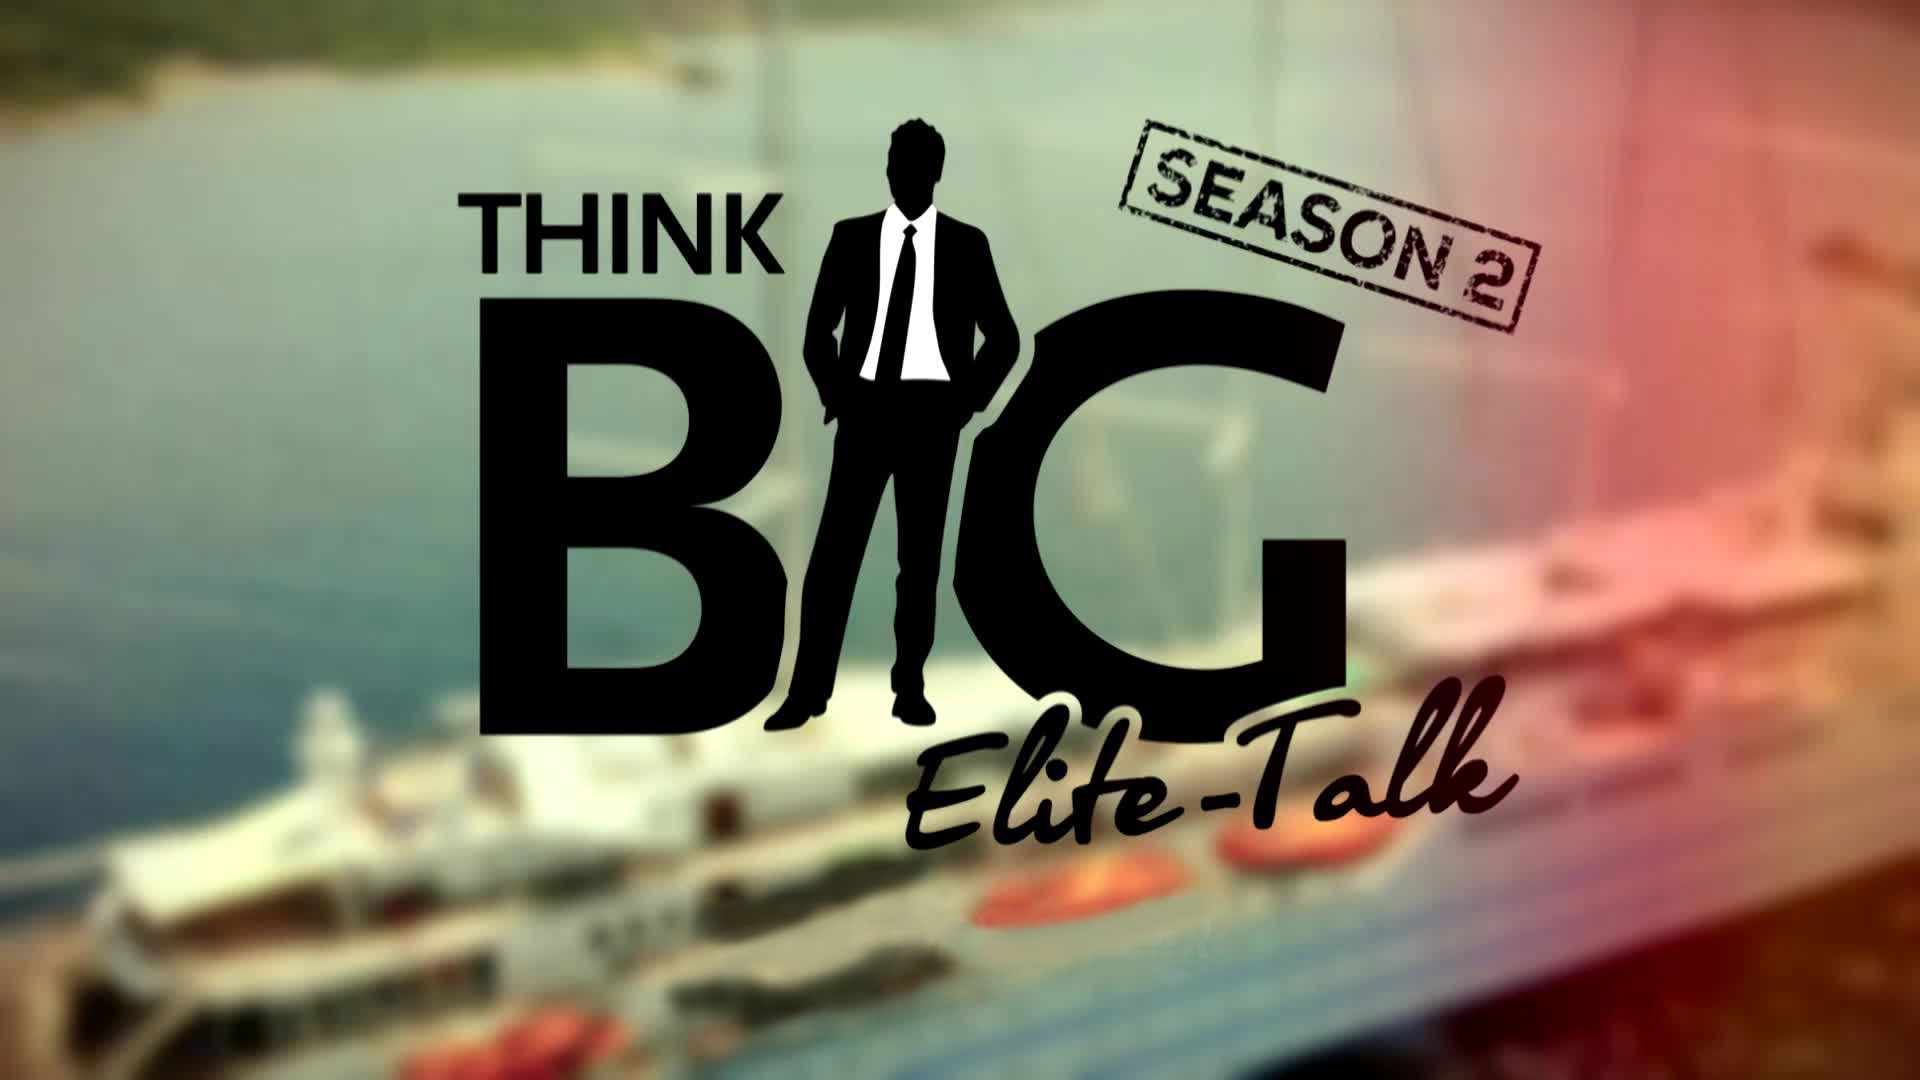 Think BIG Season 2 - Teaser Elite Talk Nizza